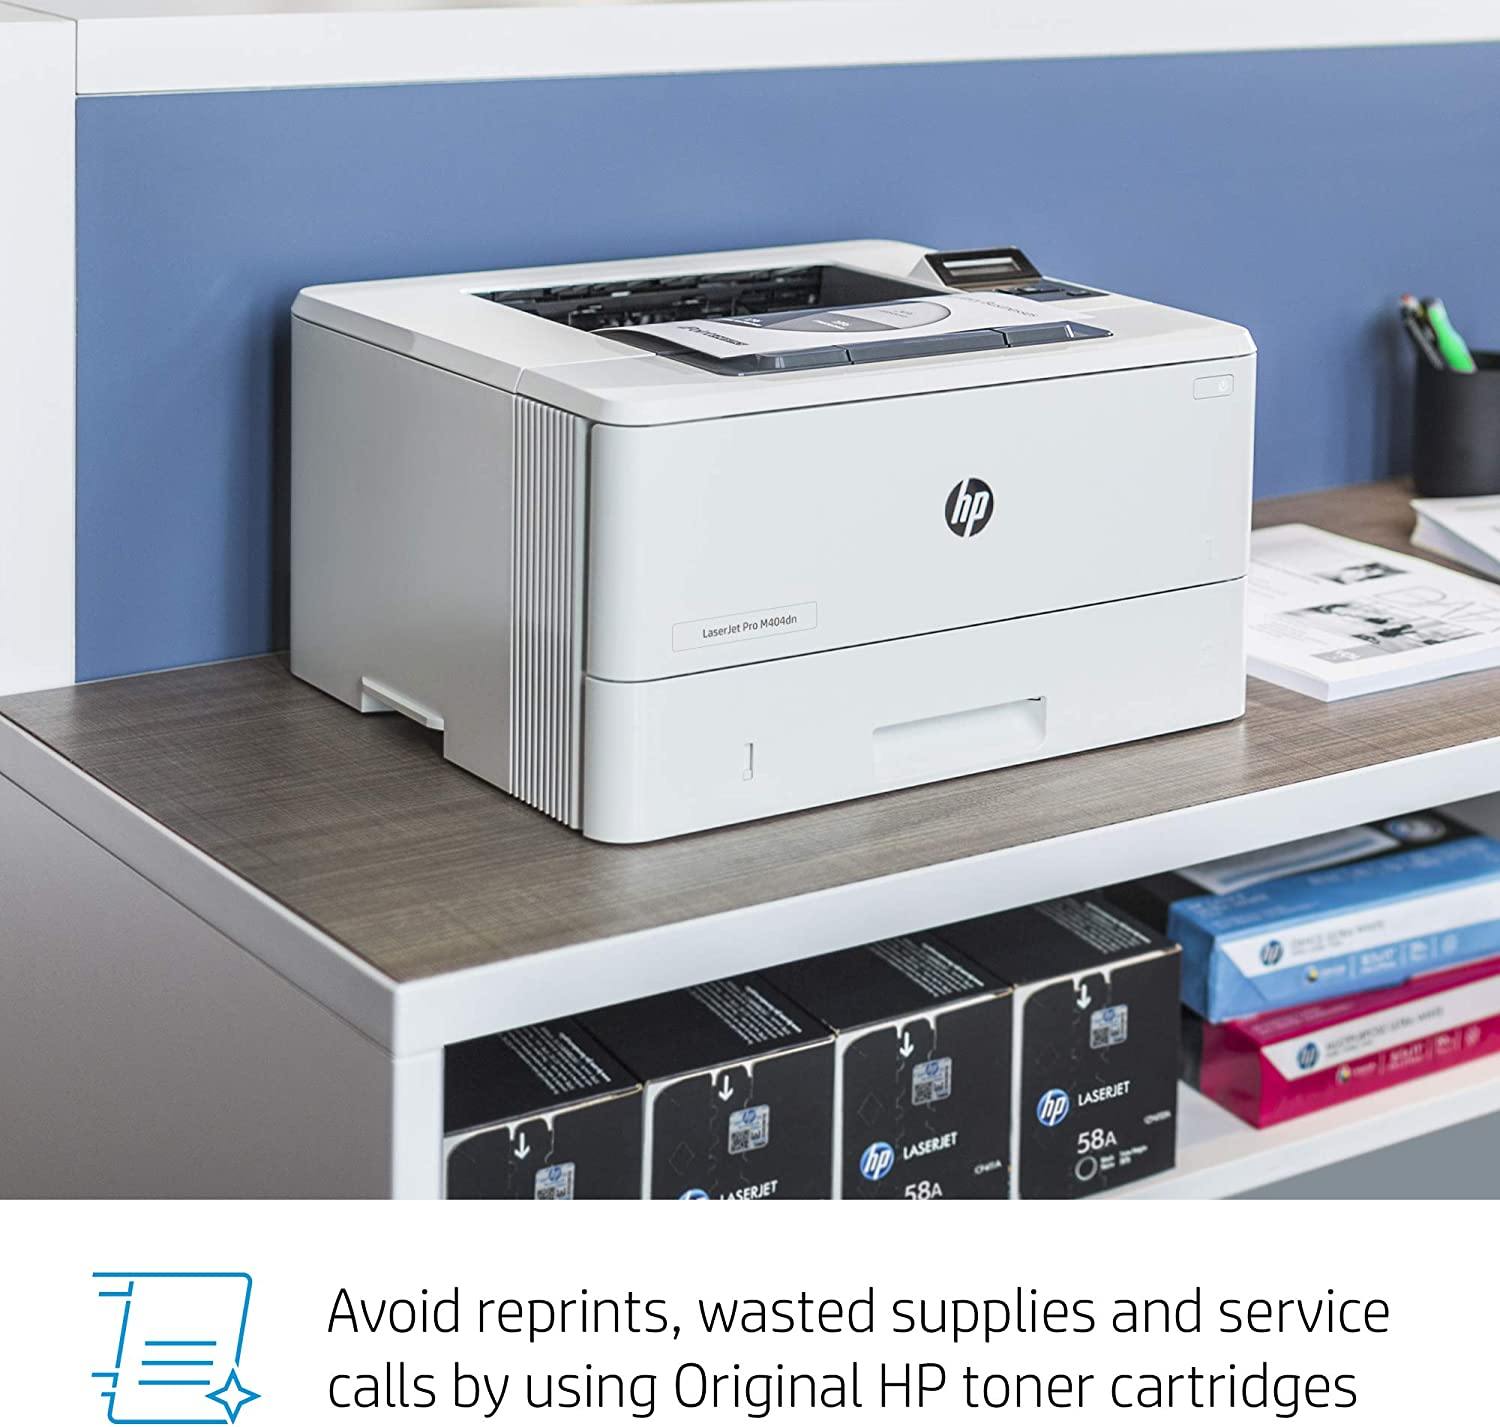 HP LaserJet Pro M404dn Monochrome Laser Printer with Built-In Ethernet & Double-Sided Printing - Built-in Ethernet (W1A53A)